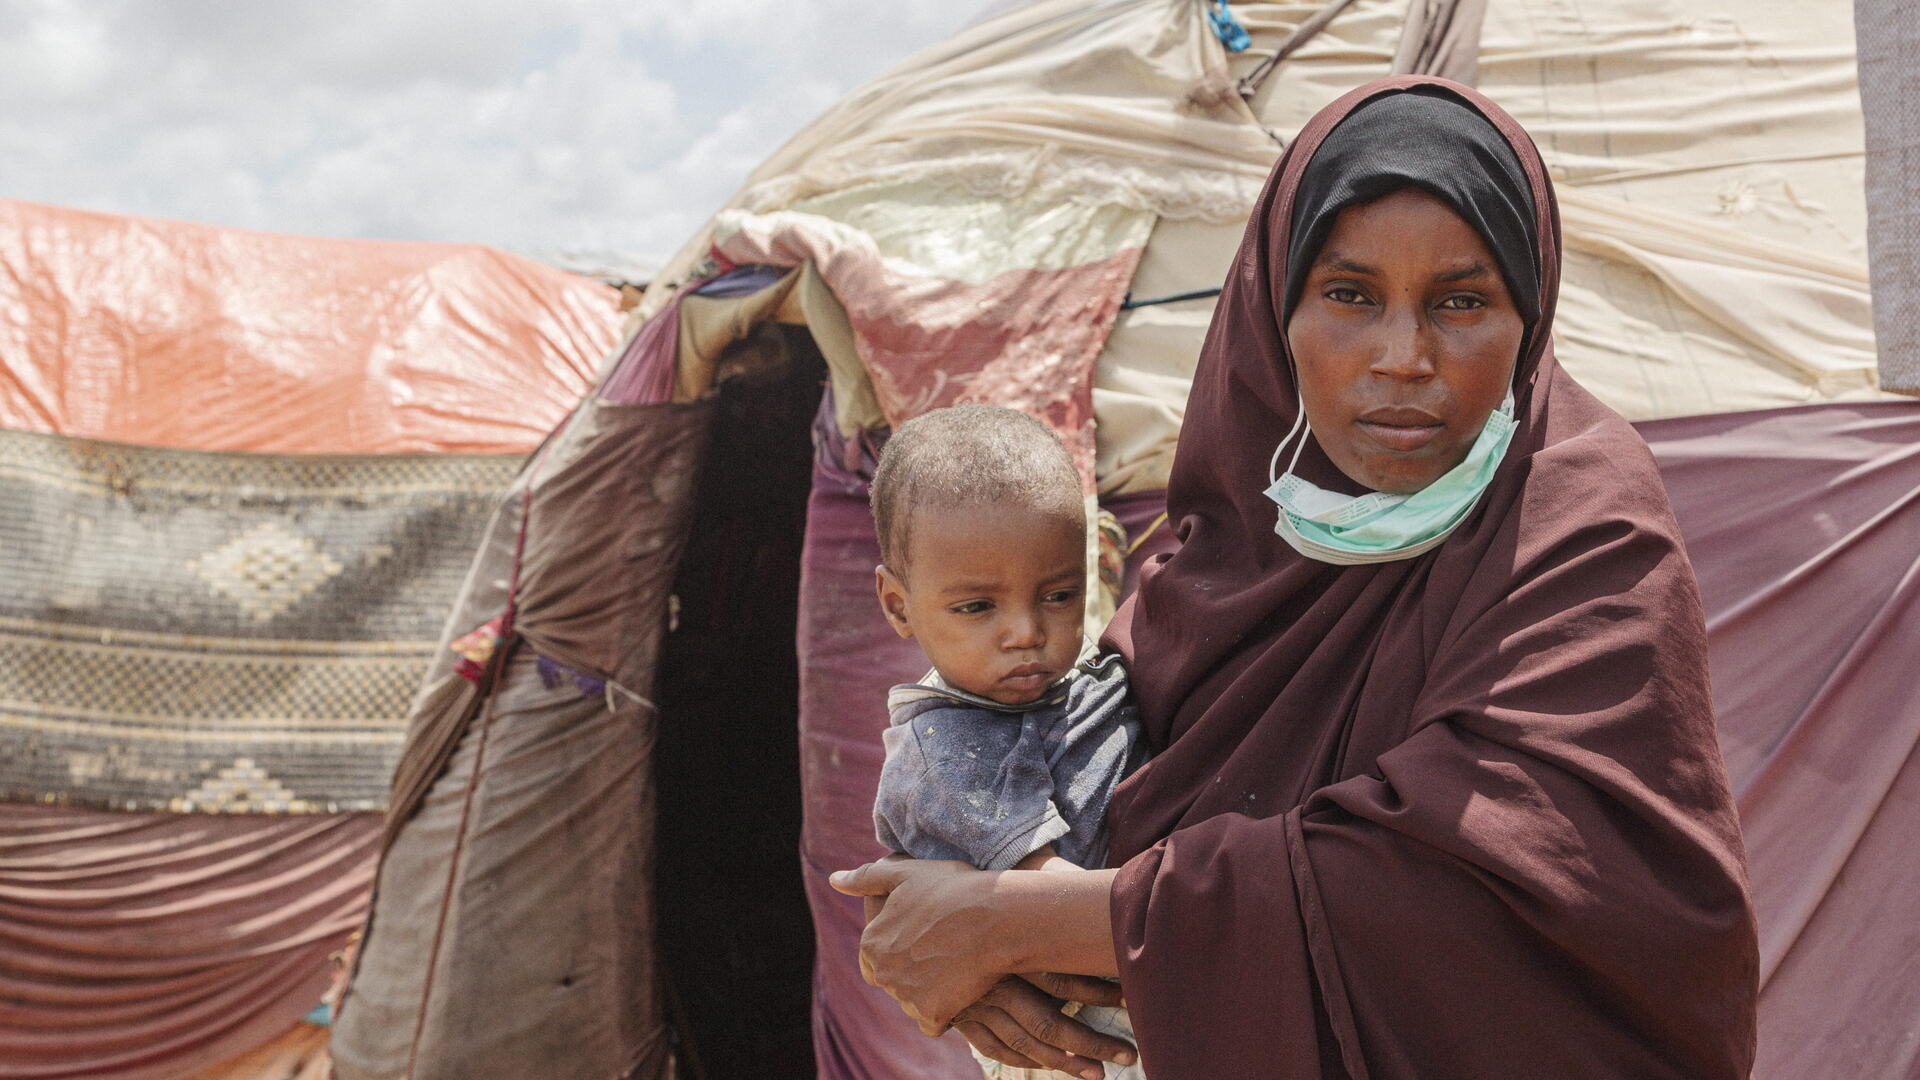 Amina holds her son while standing in front of several tents.